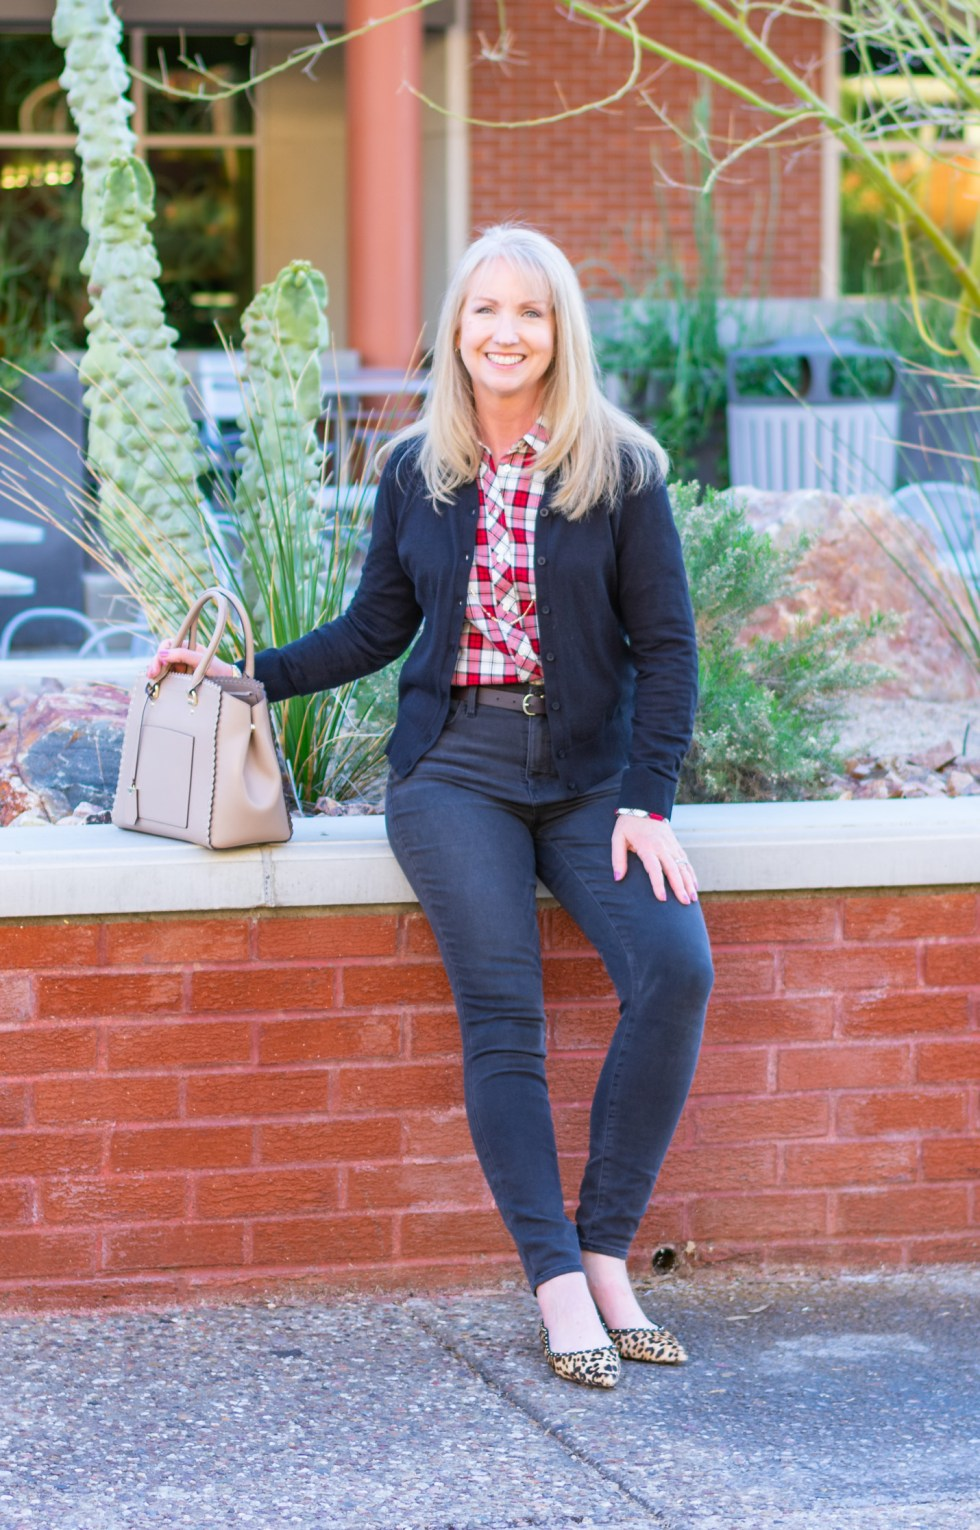 How to Wear Plaid + Leopard Print Together